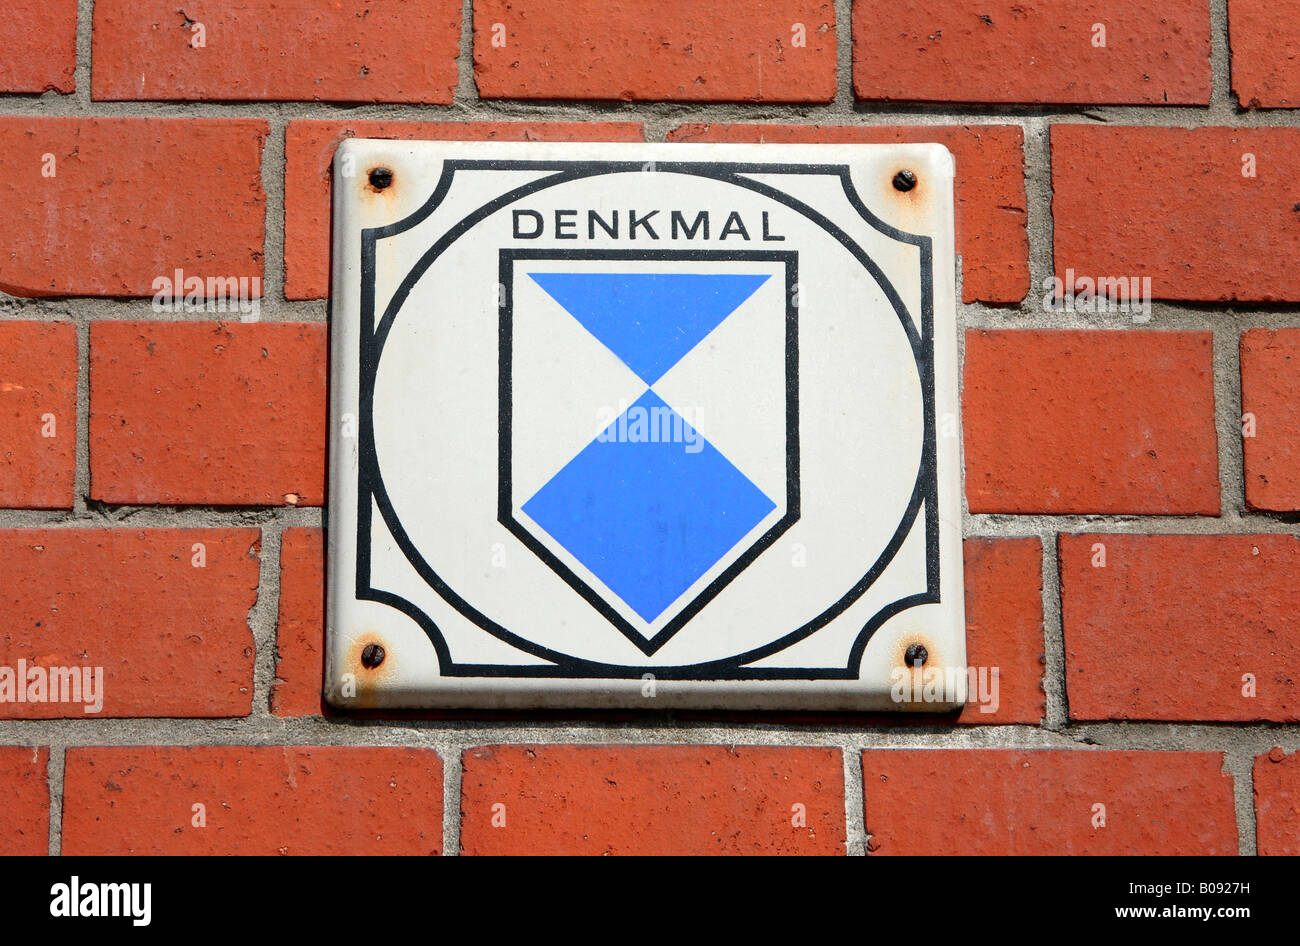 Plaque mounted on a brick wall marking an historic building, Germany - Stock Image